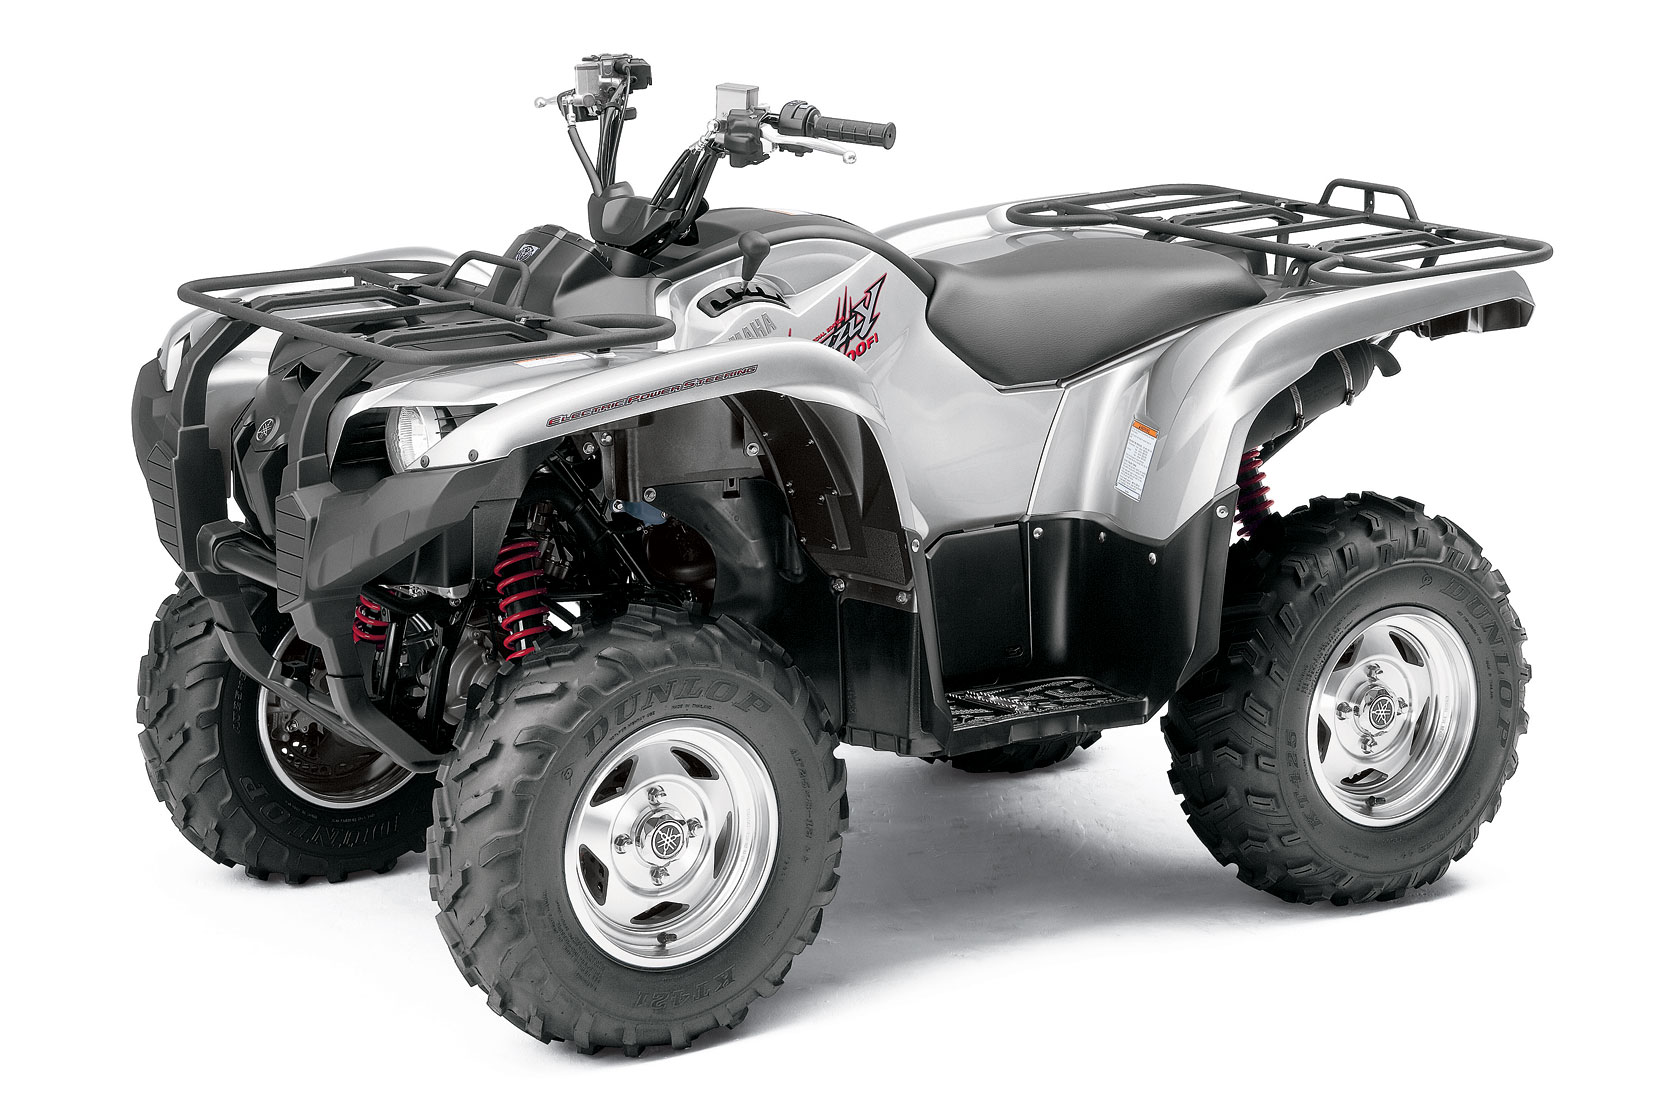 Yamaha grizzly 700 fi eps special edition 2009 2010 car for 2009 yamaha grizzly 450 value